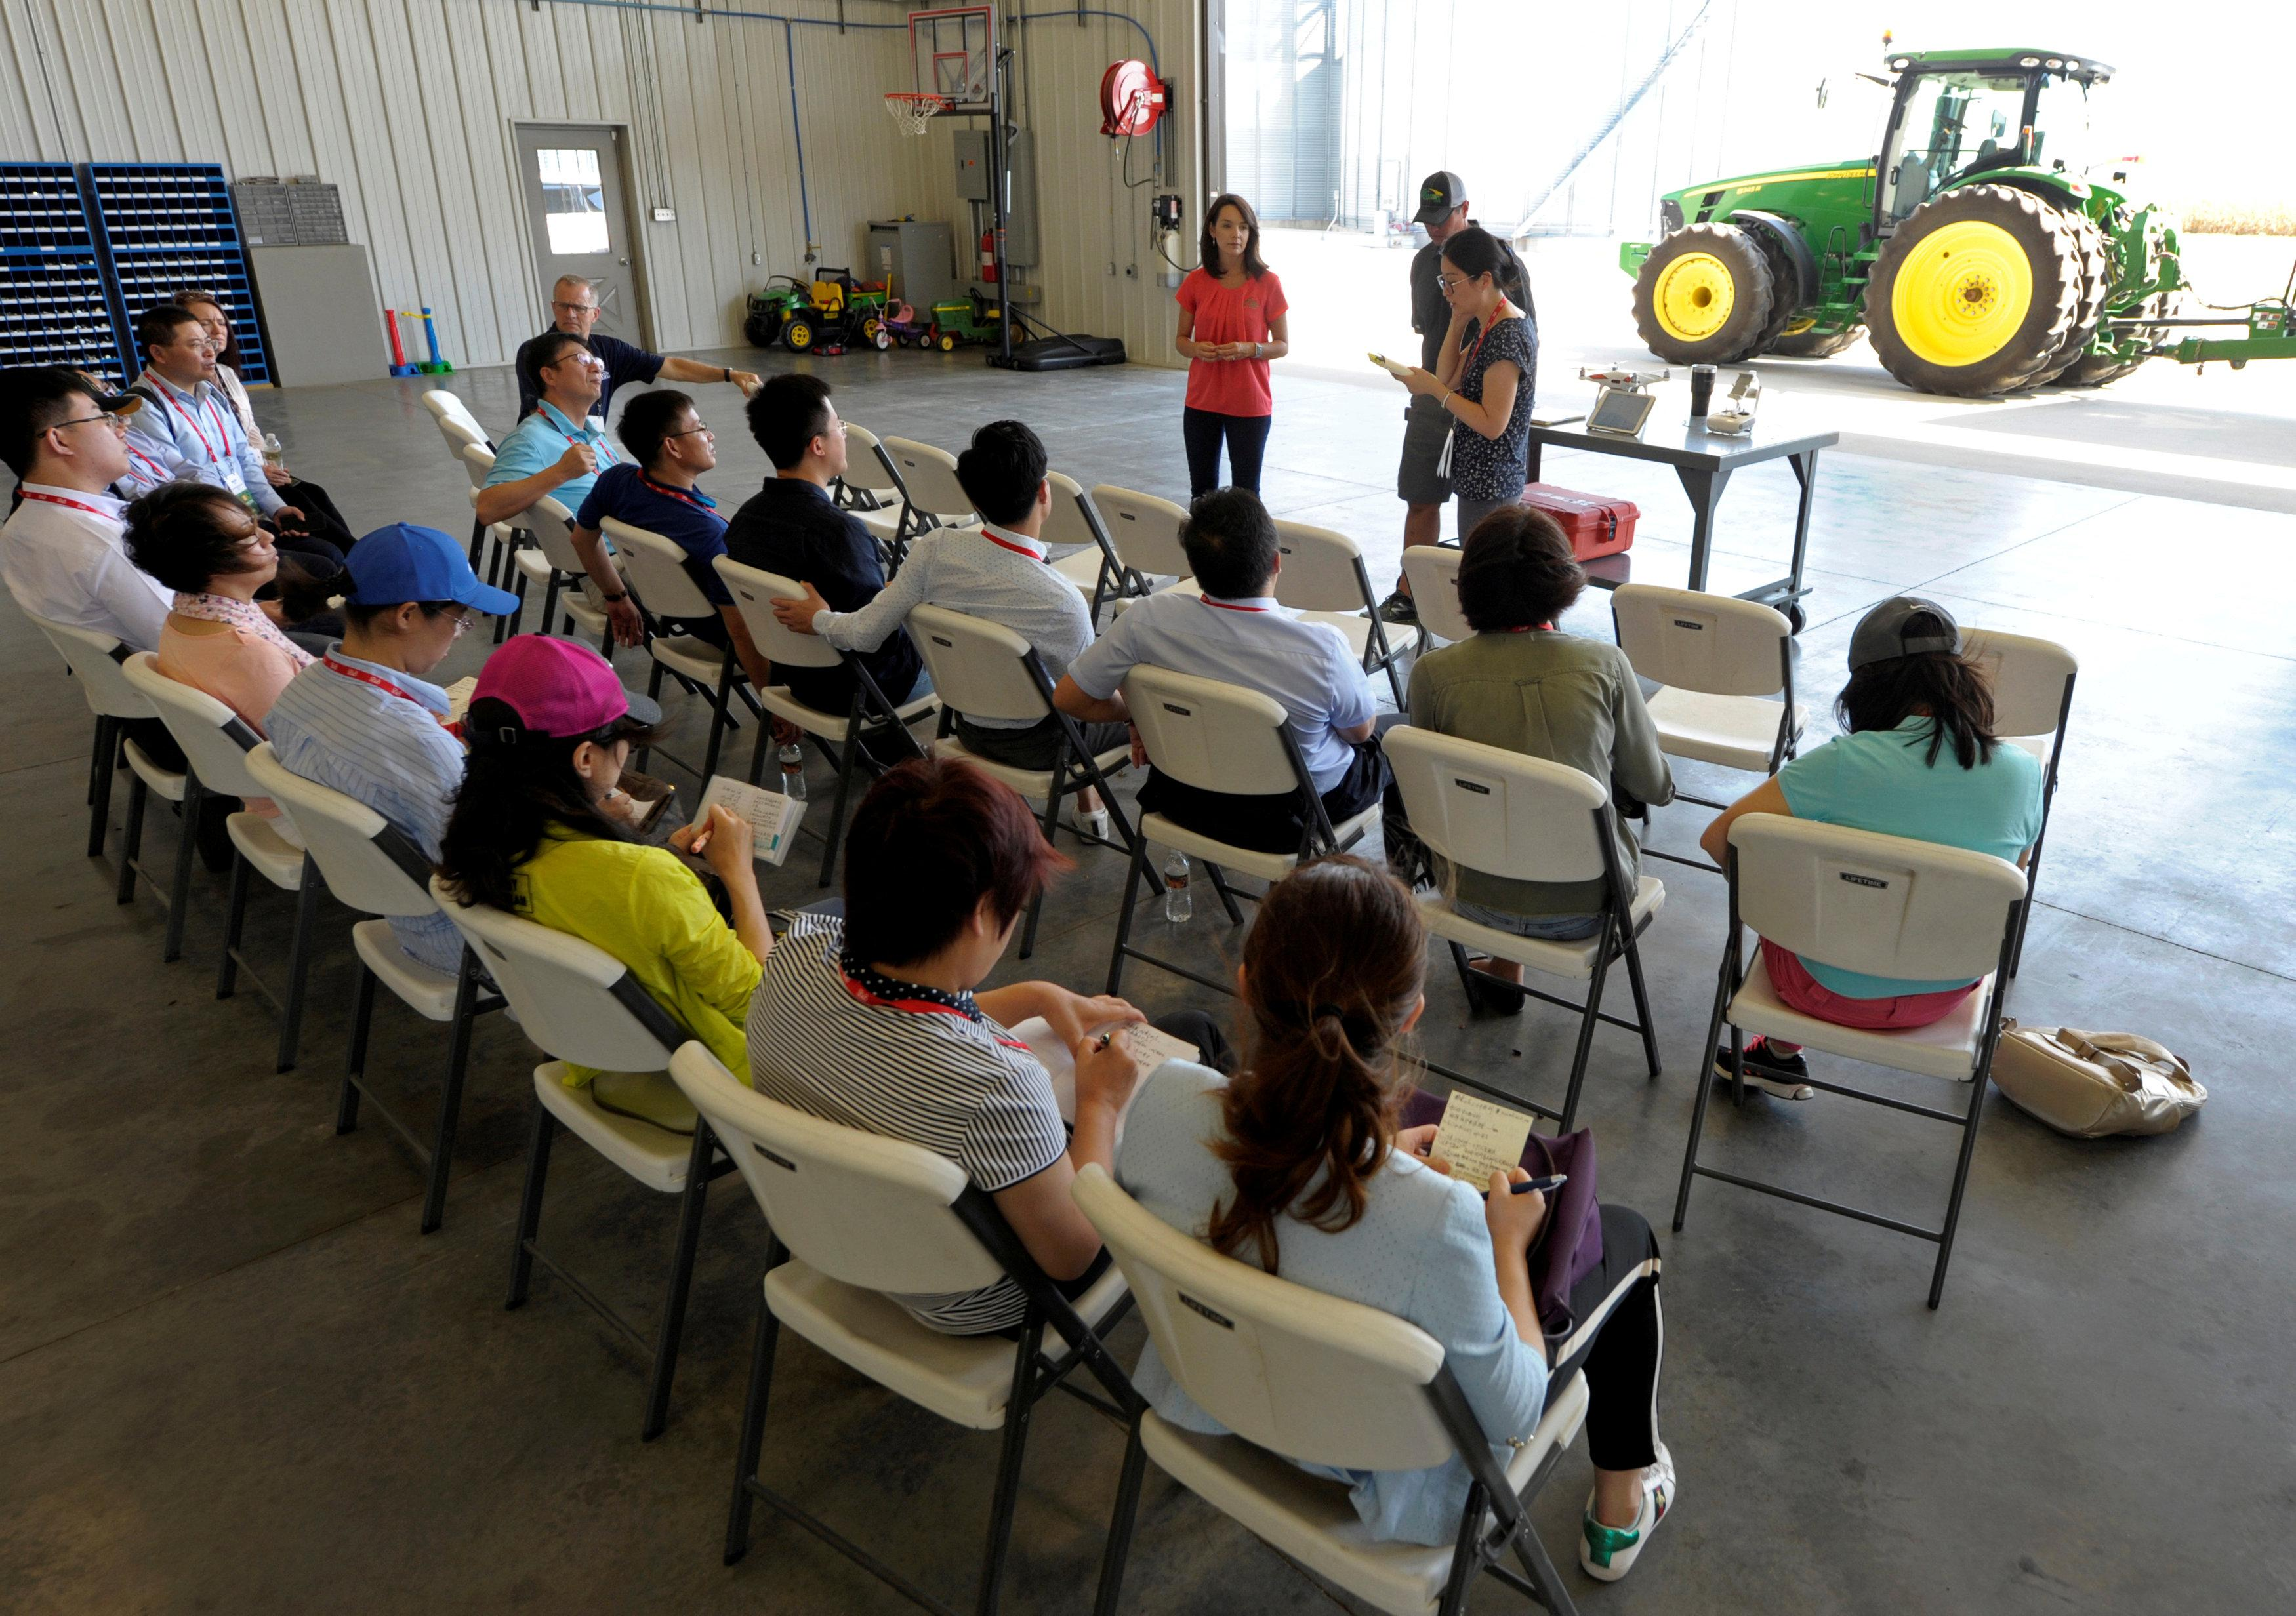 A Chinese trade delegation listens about modern farming during a visit to the Kaiser farm near Norborne, Missouri, U.S., August 28, 2018.  Dave Kaup